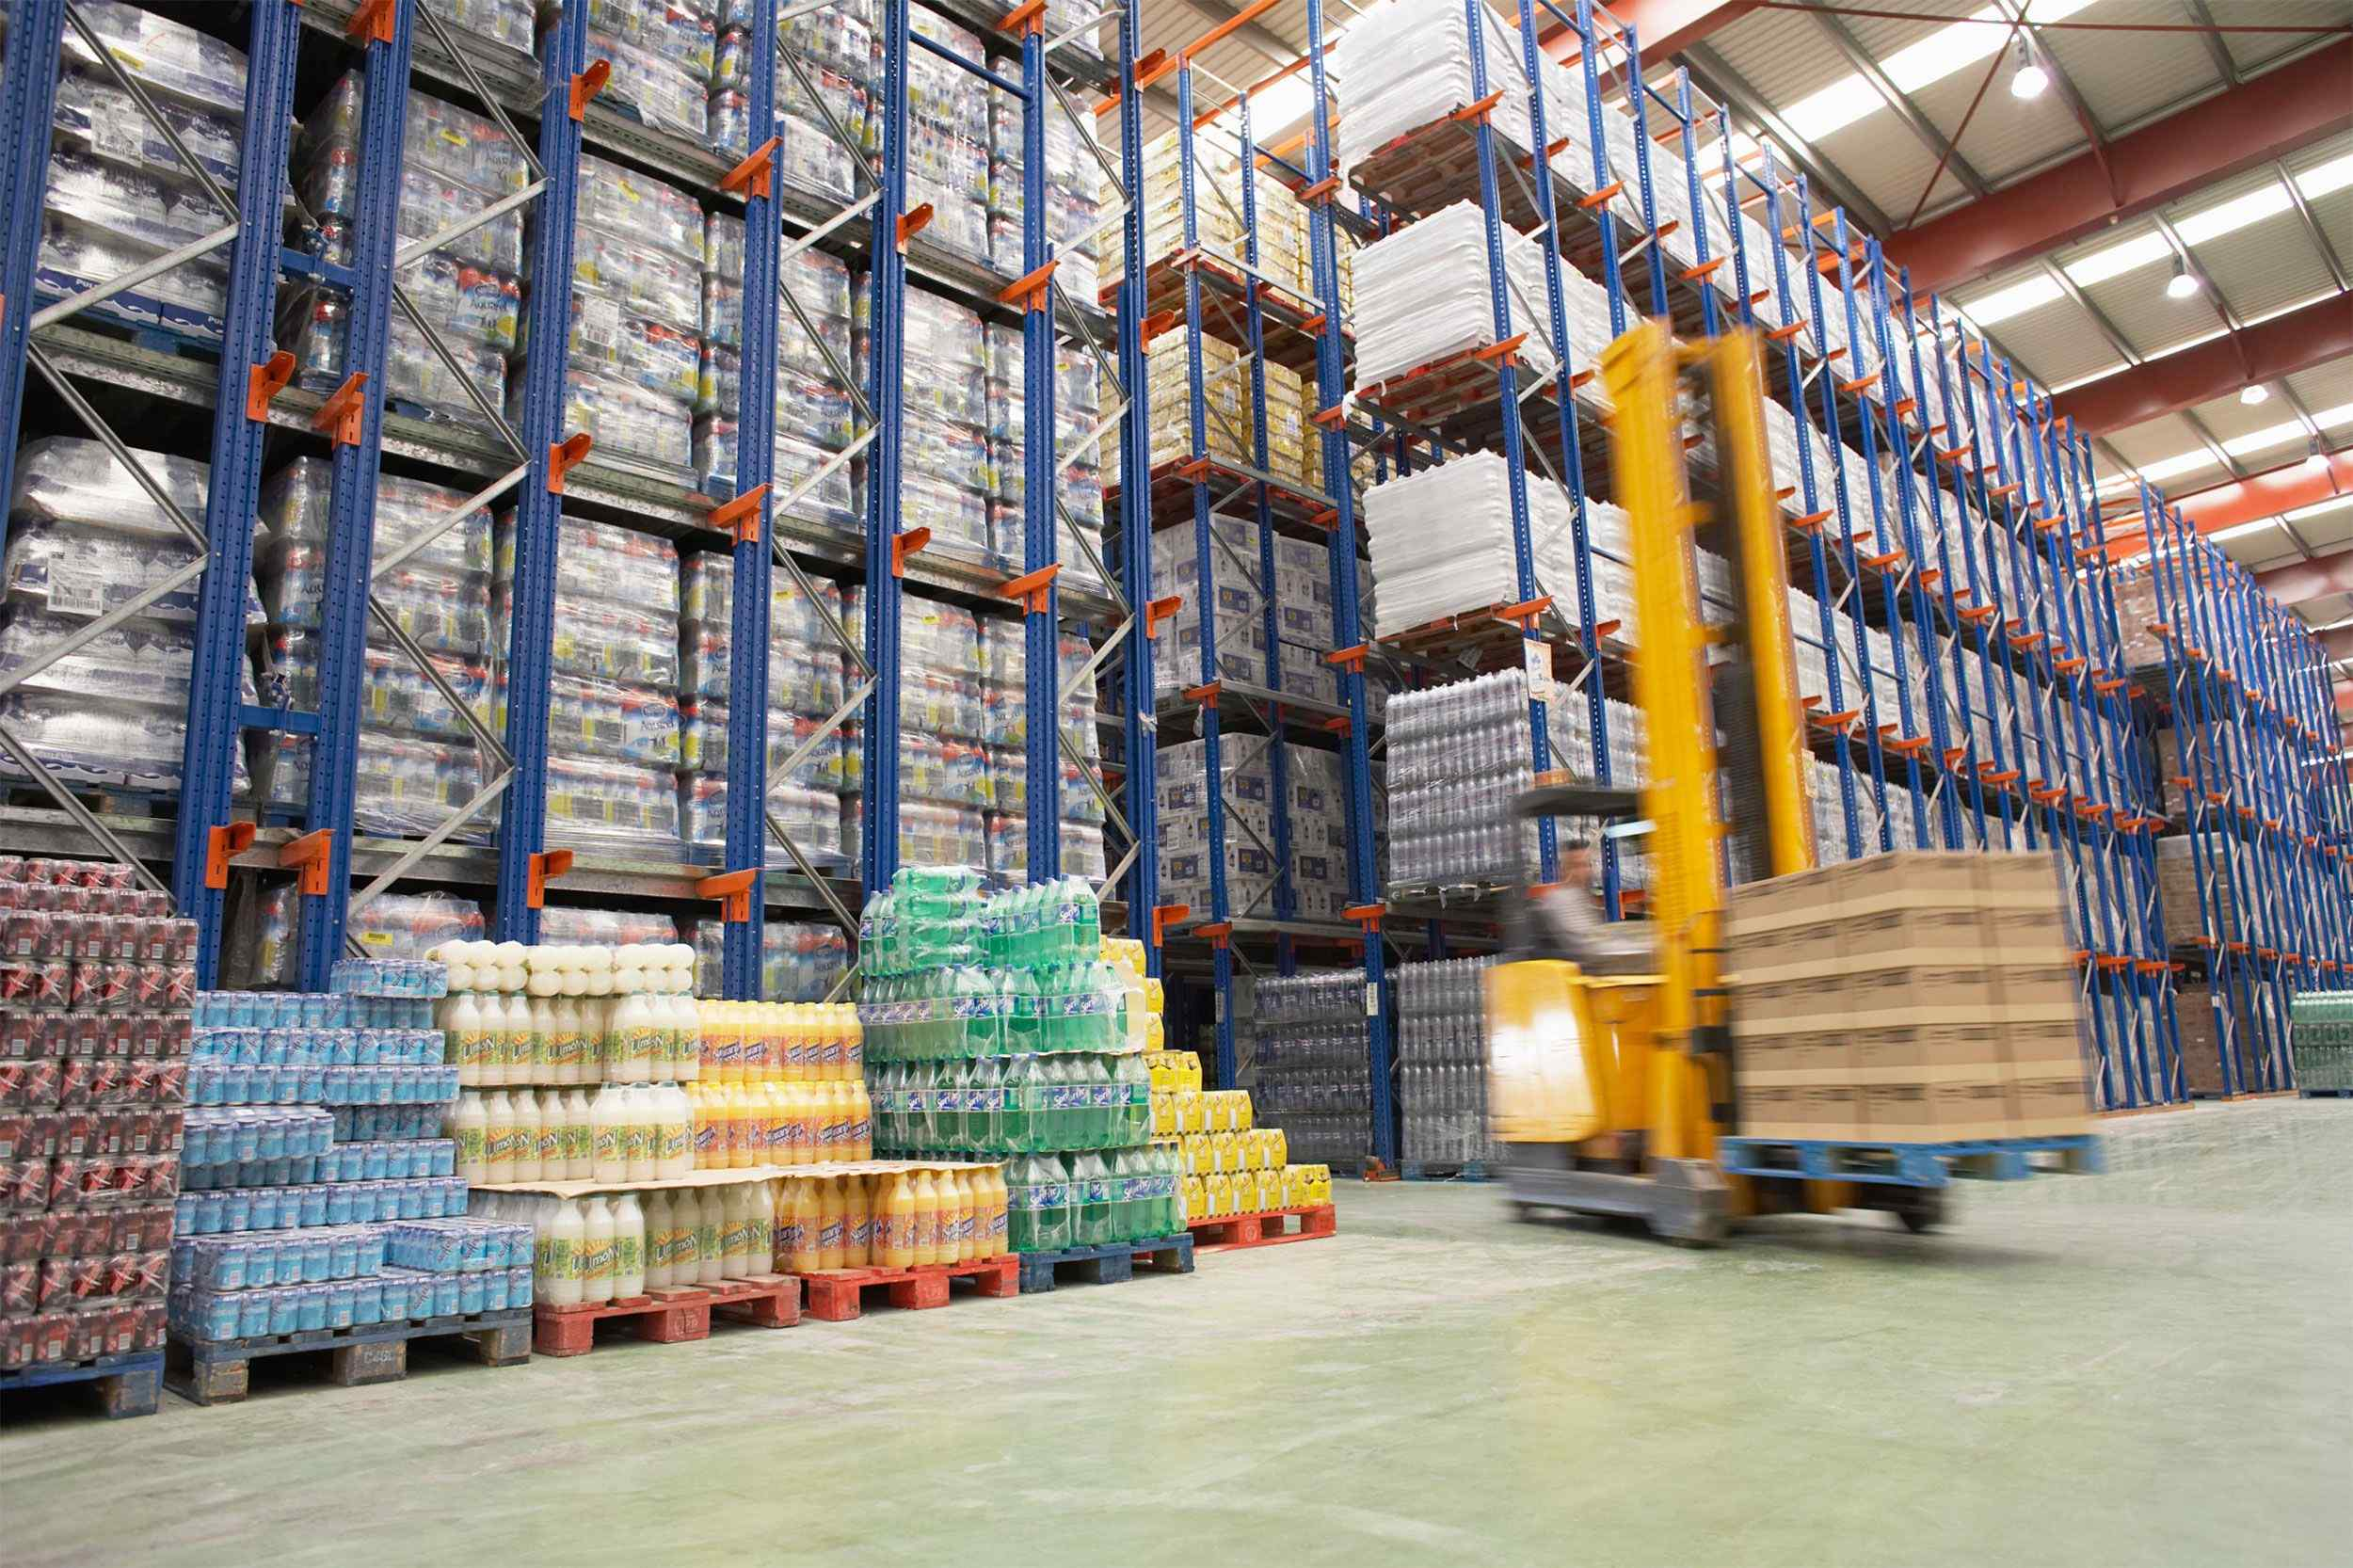 Warehouse-and-lifter.jpg?time=1634420467